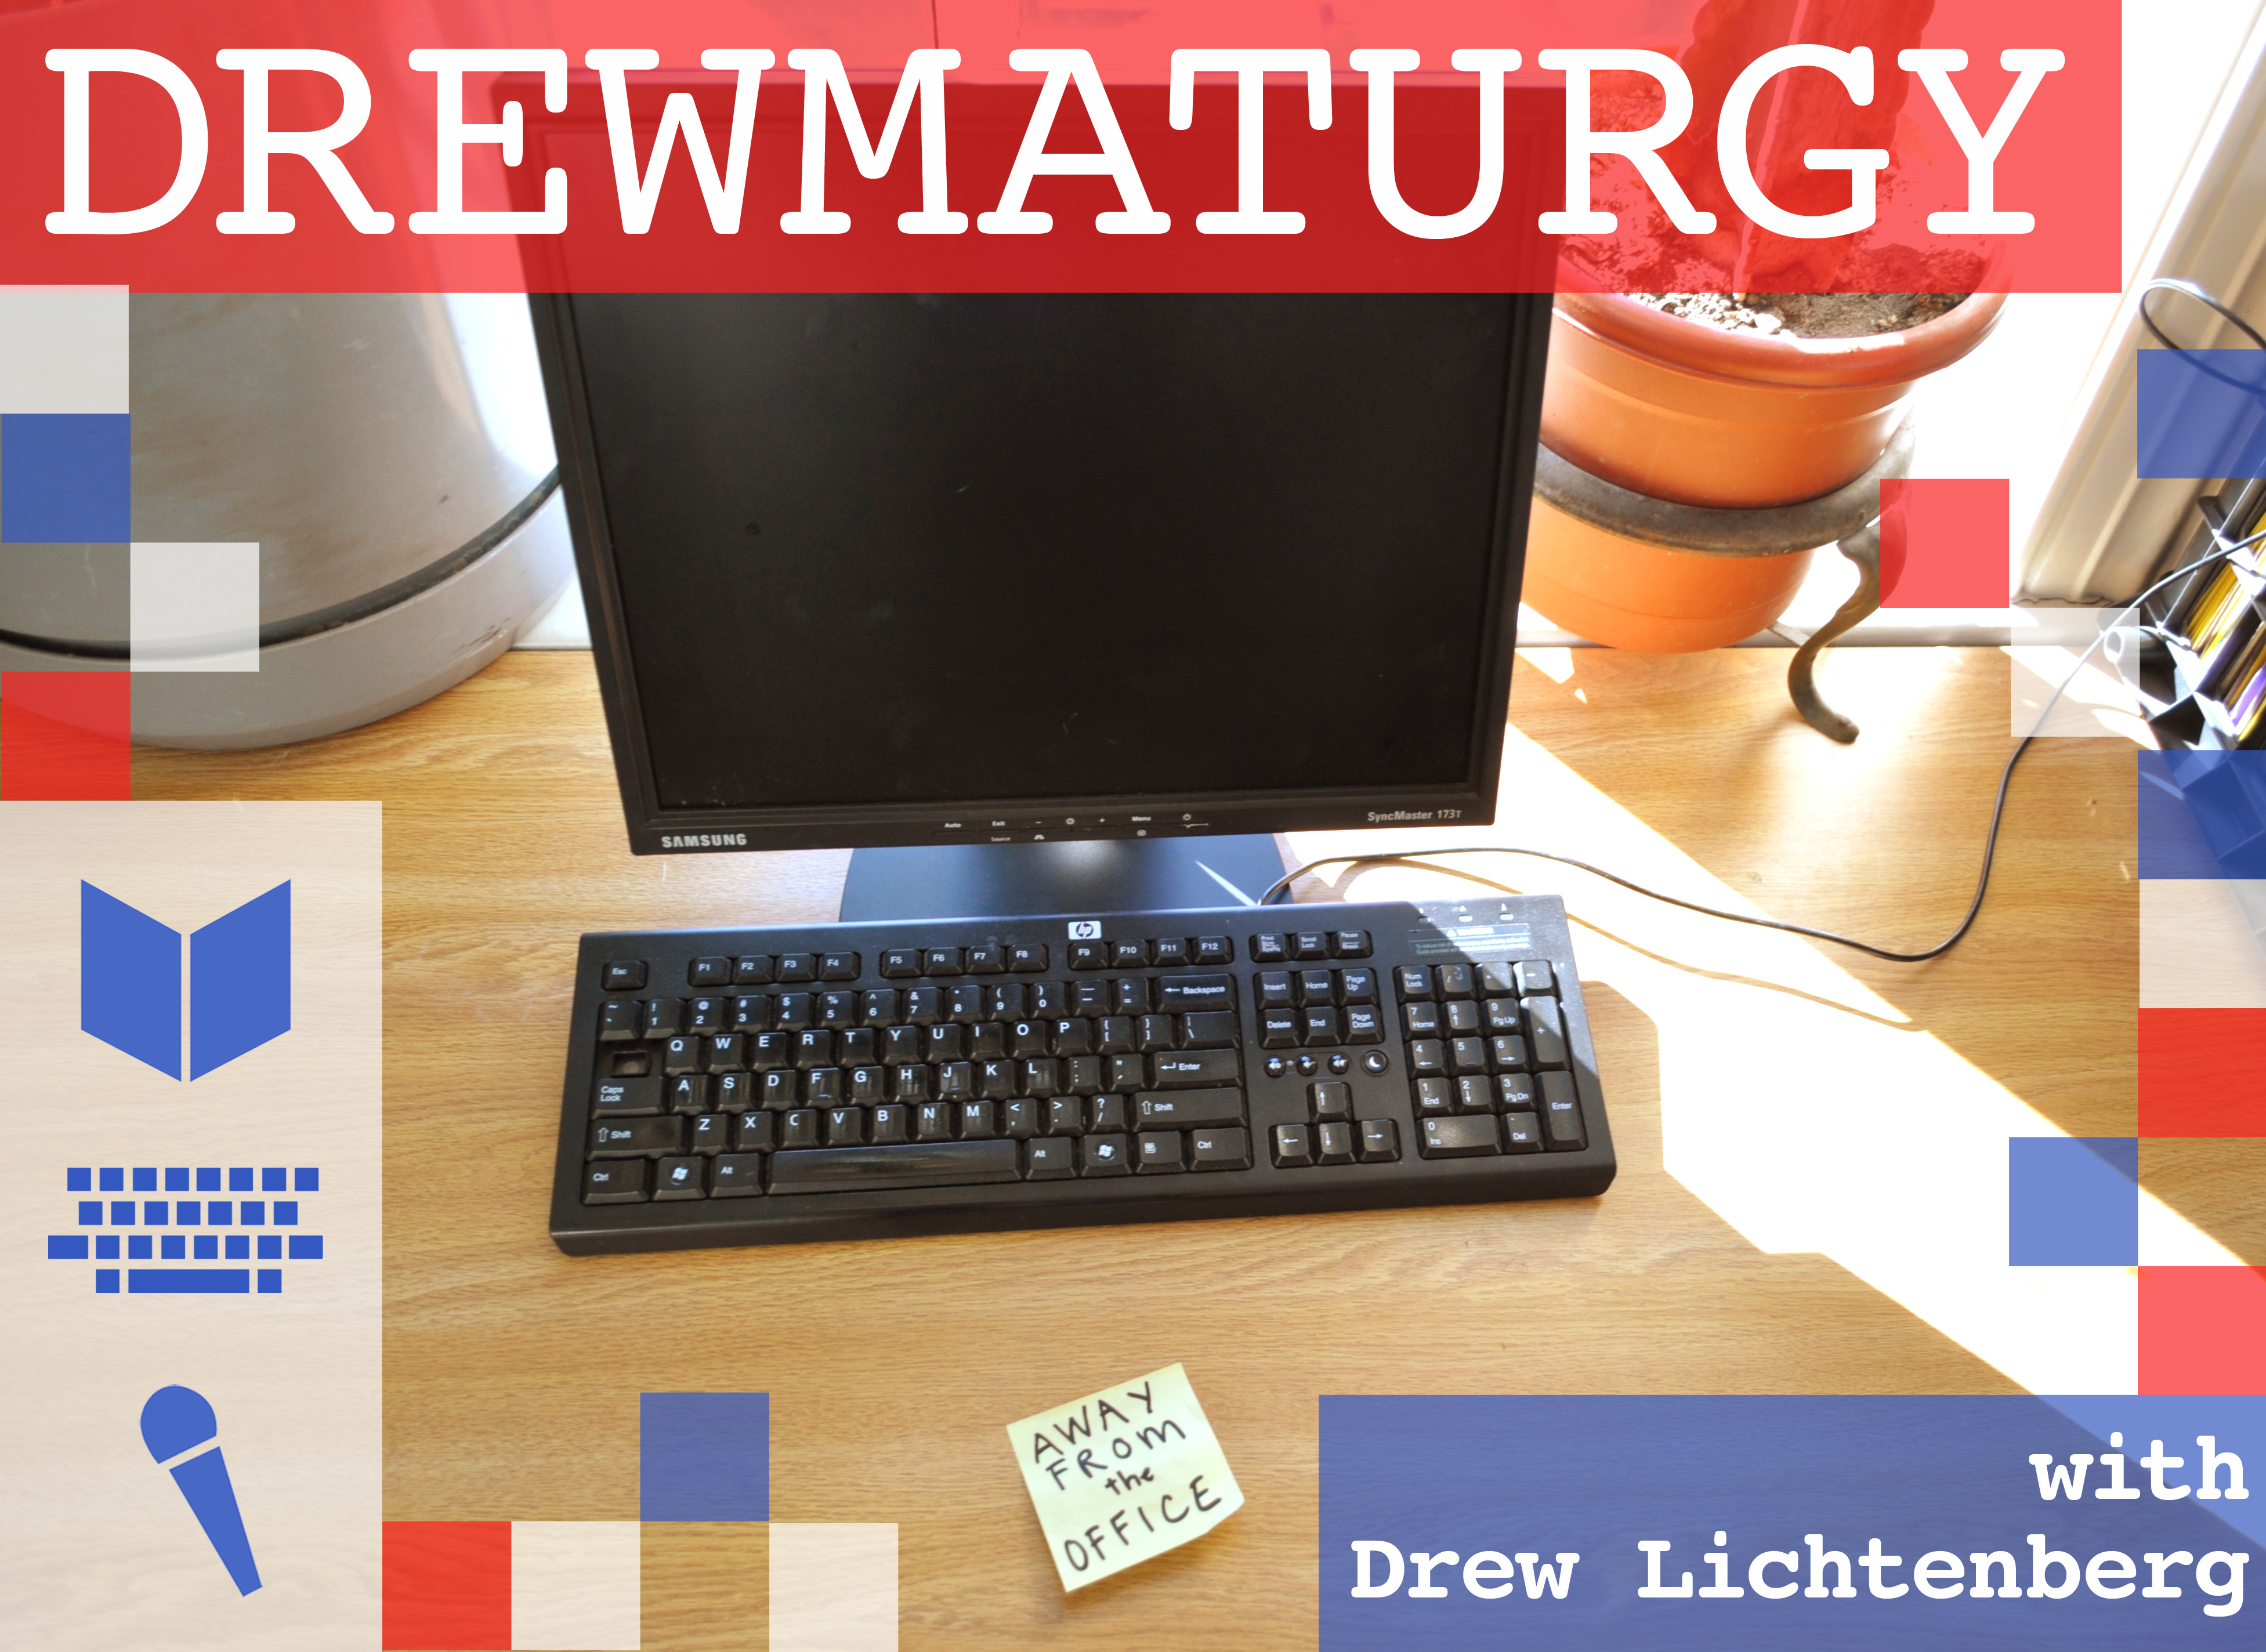 Drew's away from office